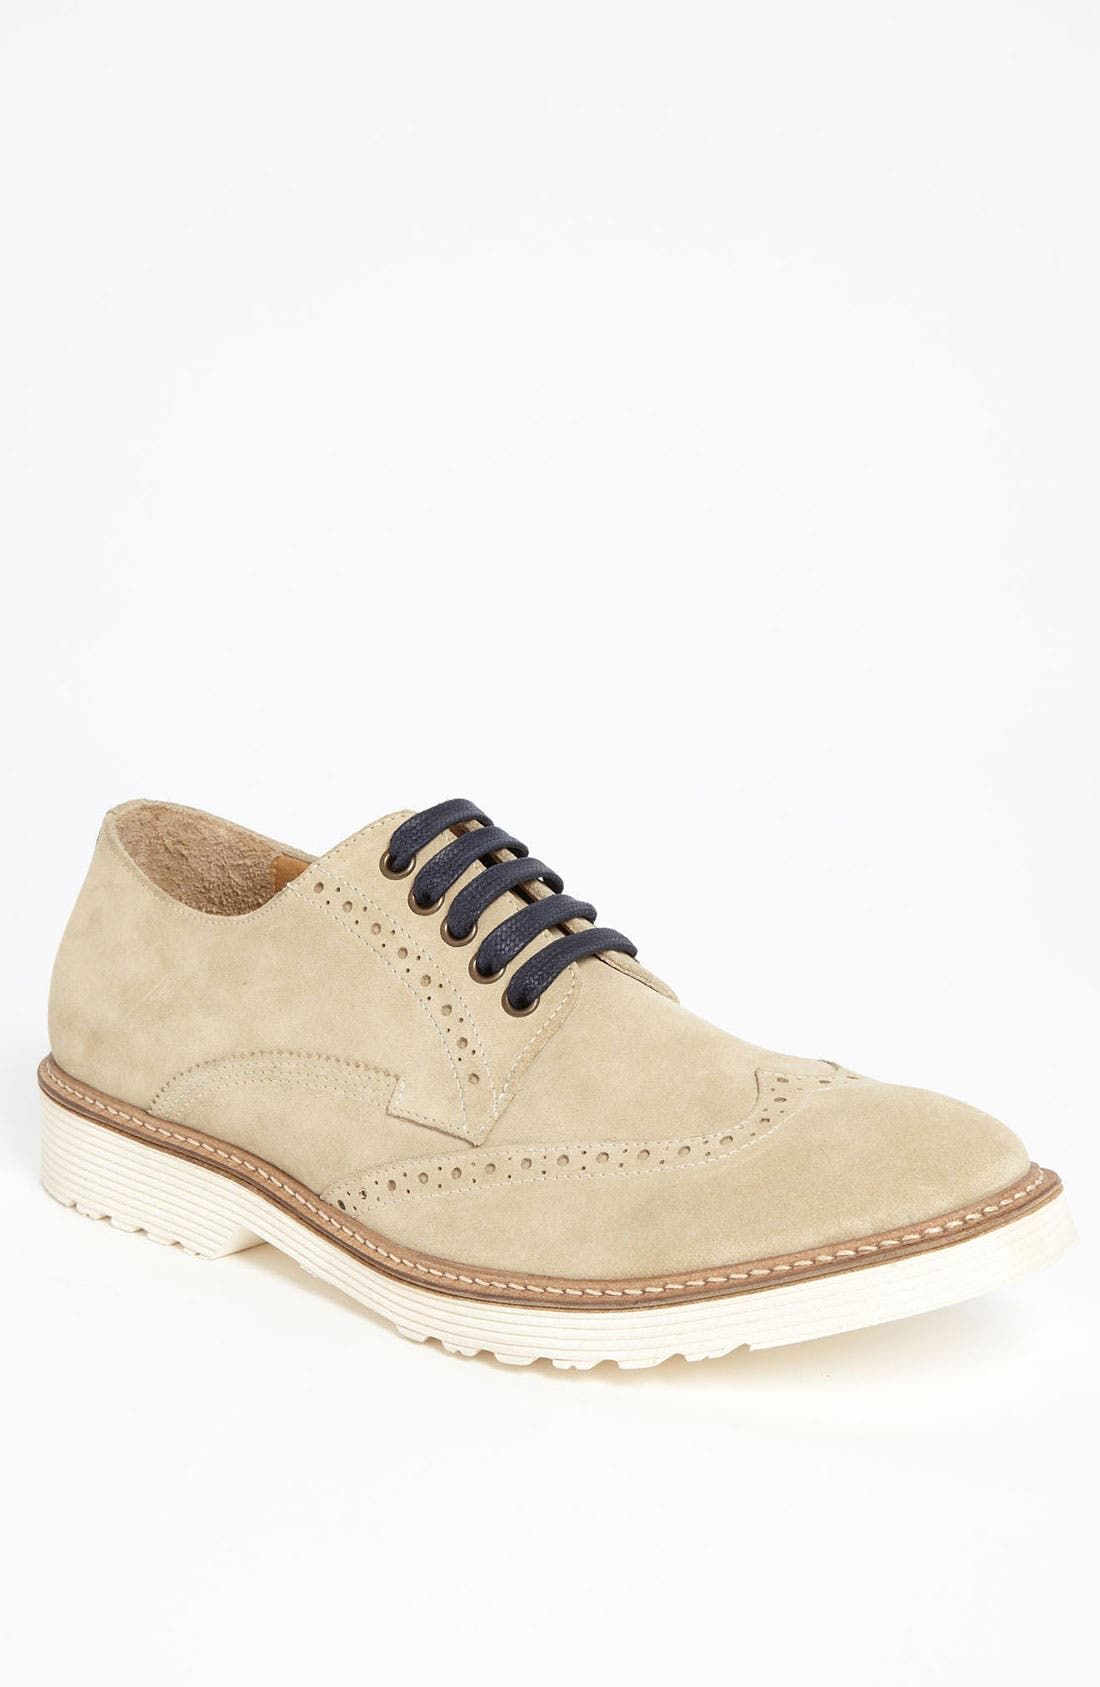 Alternate Image 1 Selected - McQ by Alexander McQueen Suede Wingtip